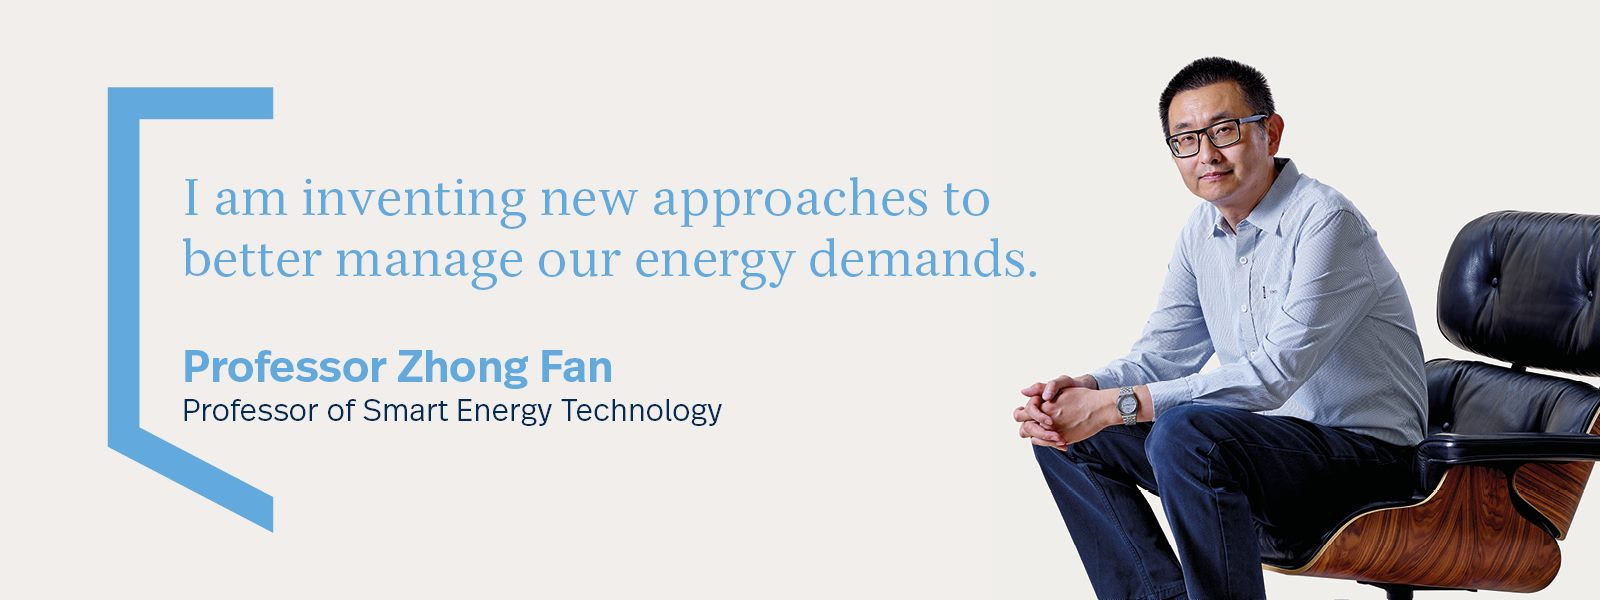 Professor Zhong Fan, Professor of Smart Energy Technology